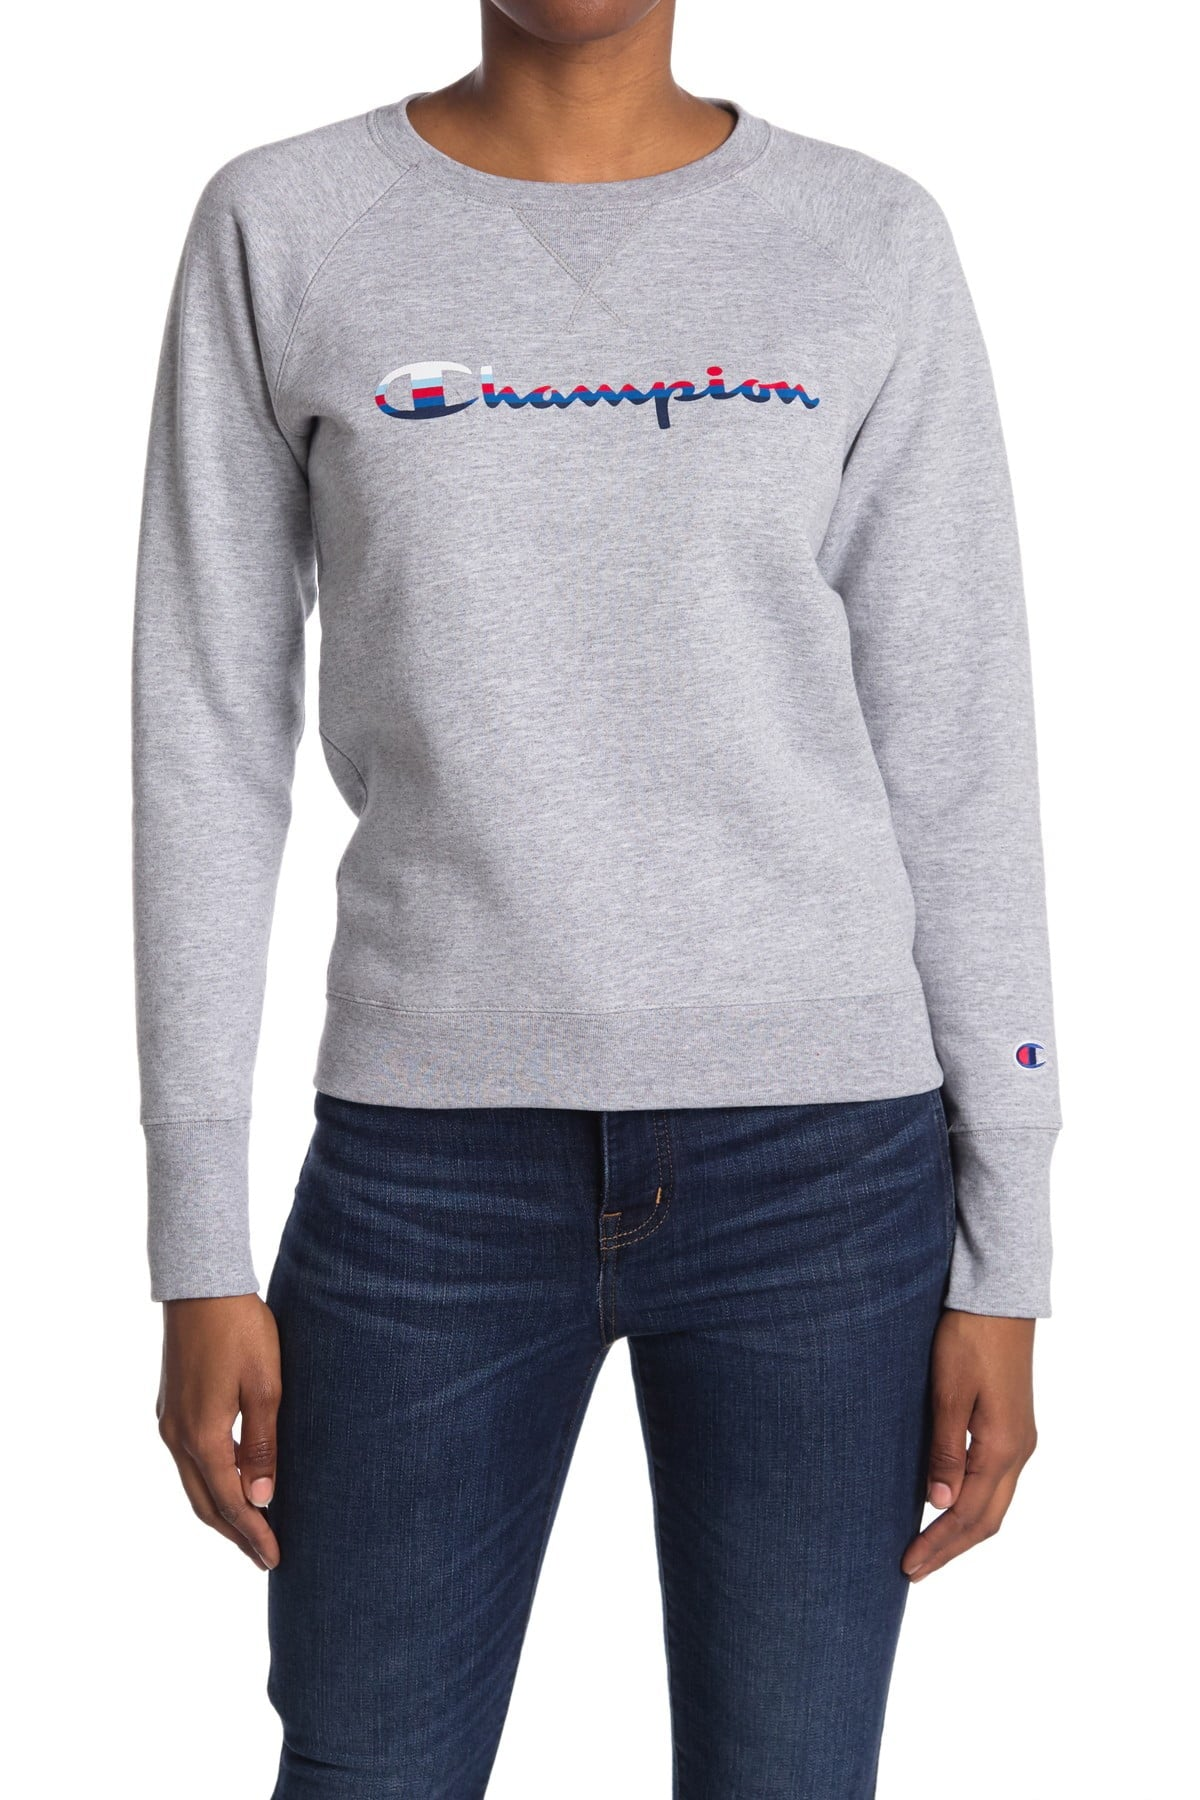 'Champion' Women's Powerblend Graphic Crew Pullover - Oxford Grey